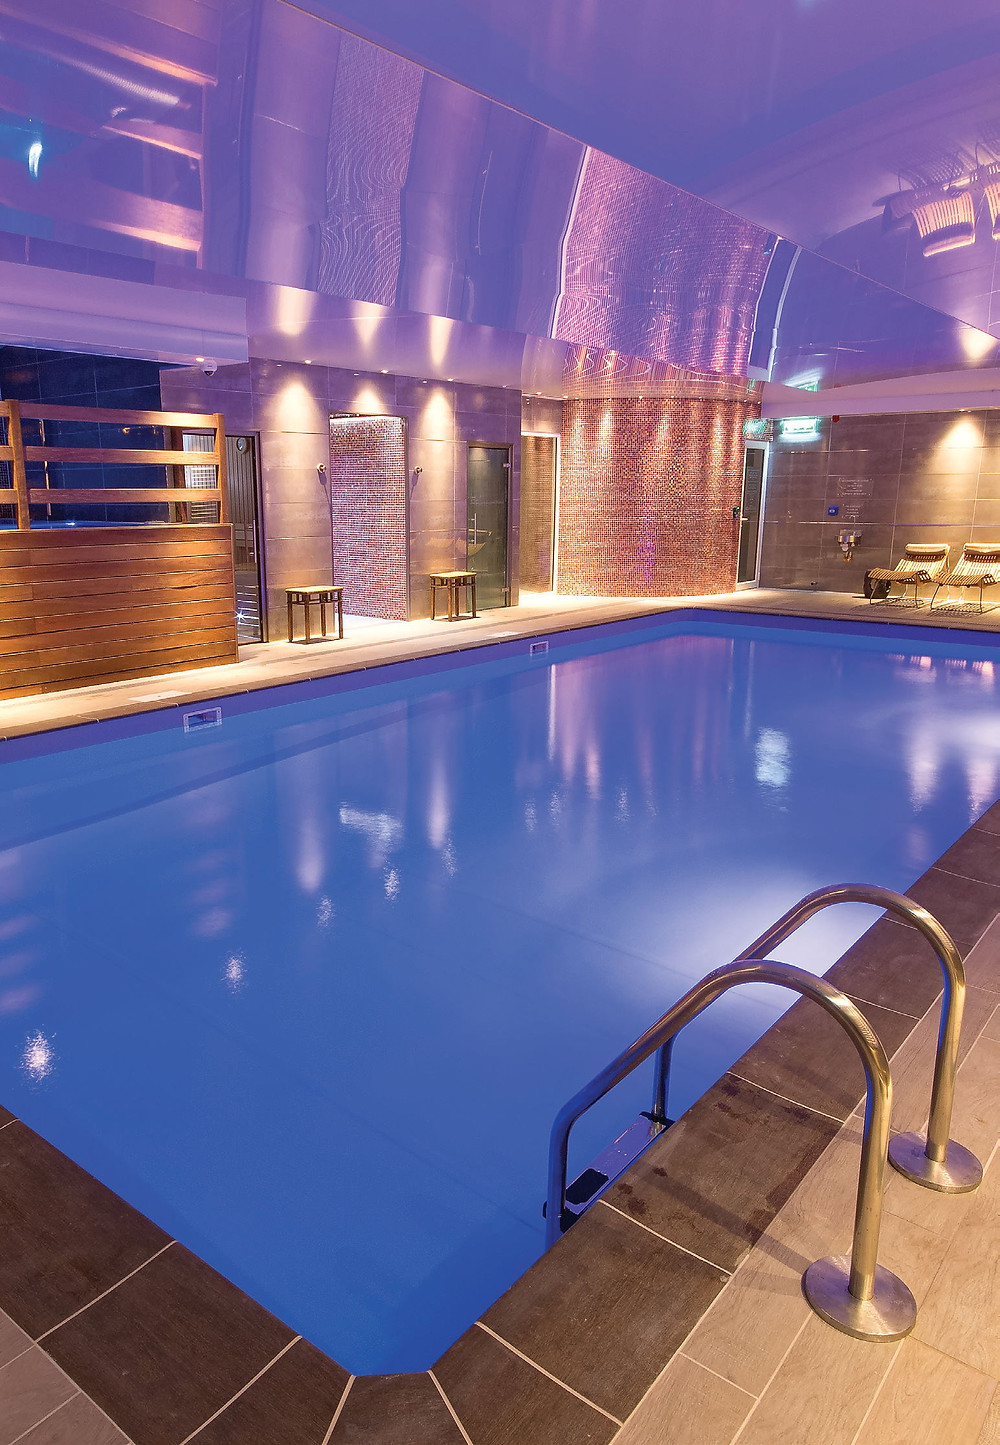 Spa Pool at the Ilsington Country House Hotel